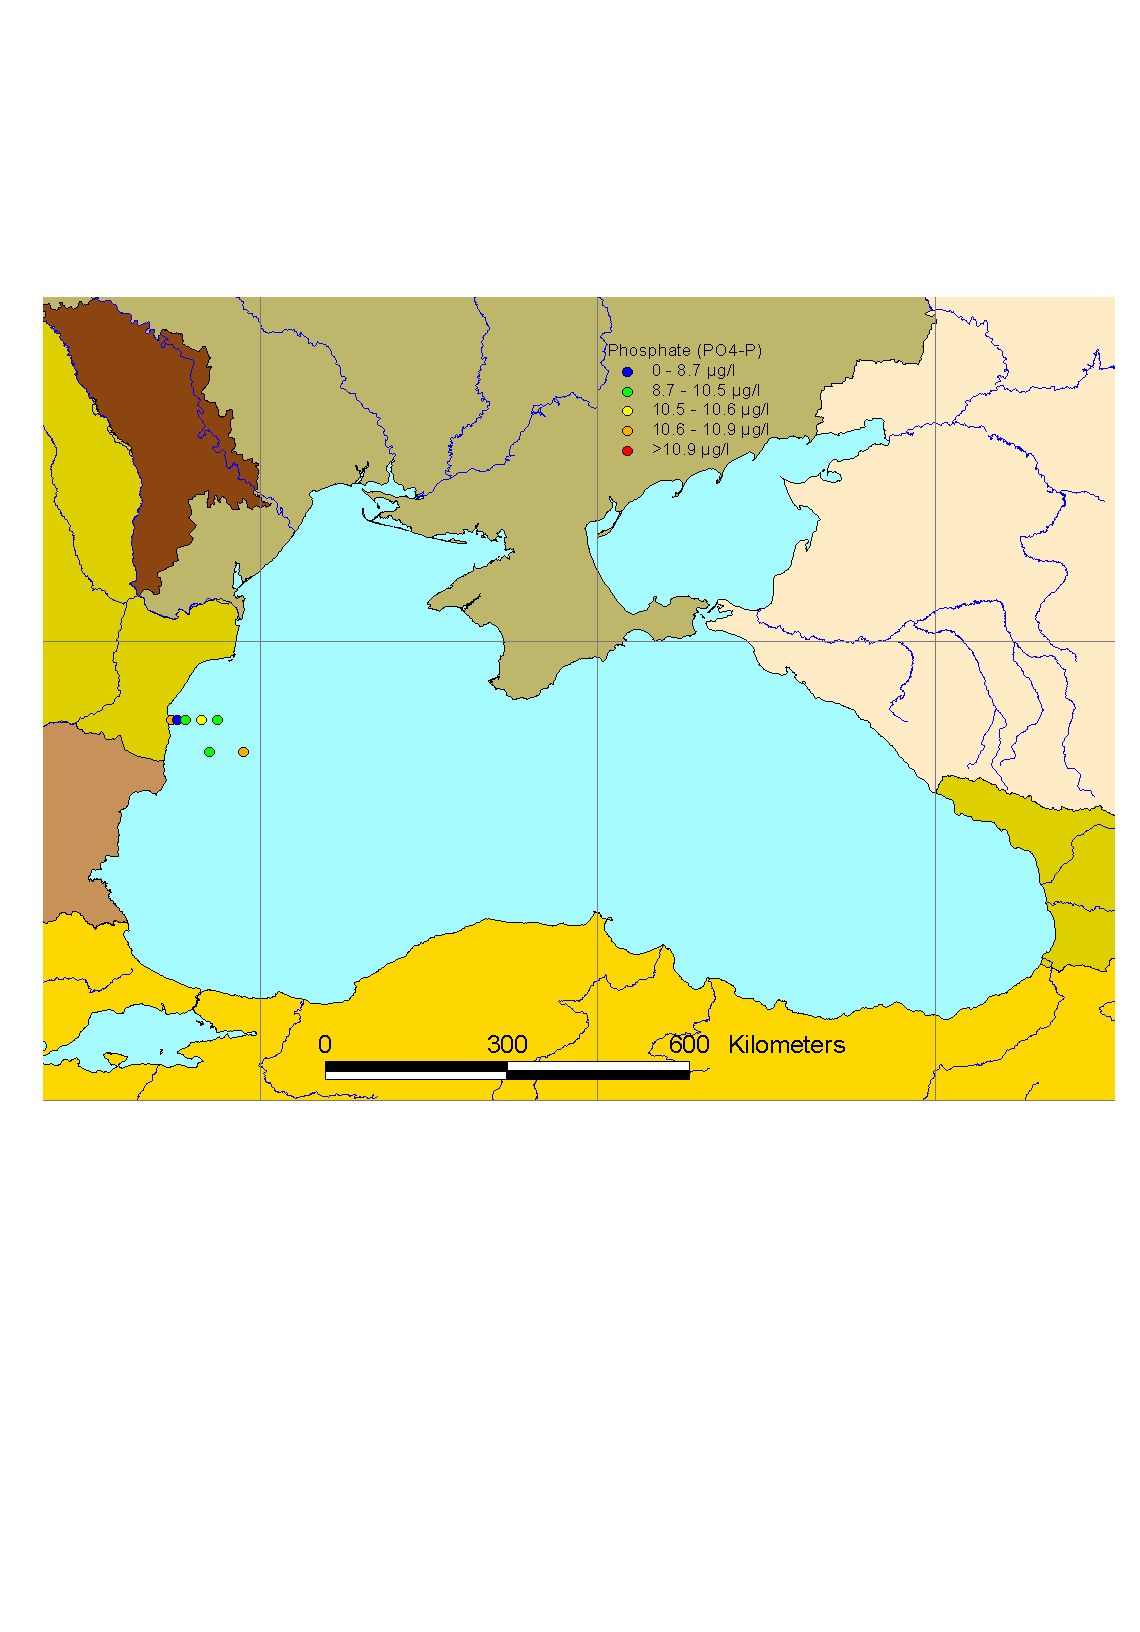 Mean winter surface concentrations of phosphate in the Black Sea, 2003